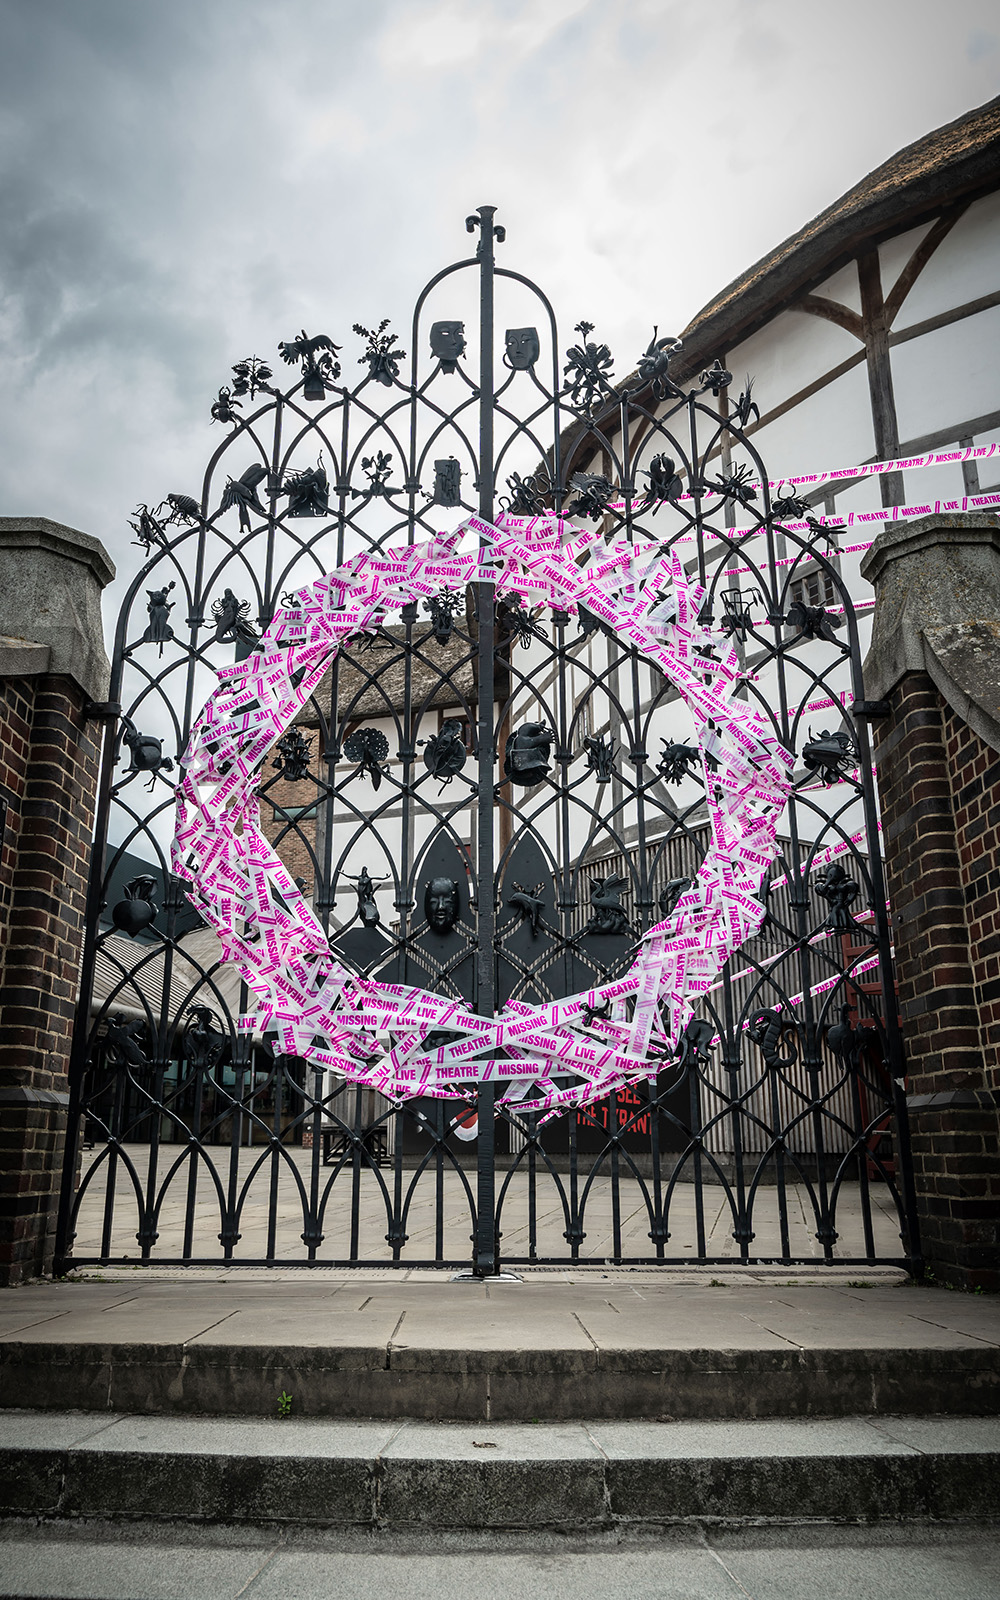 White and pink tape forms a circle on a set of iron gates.